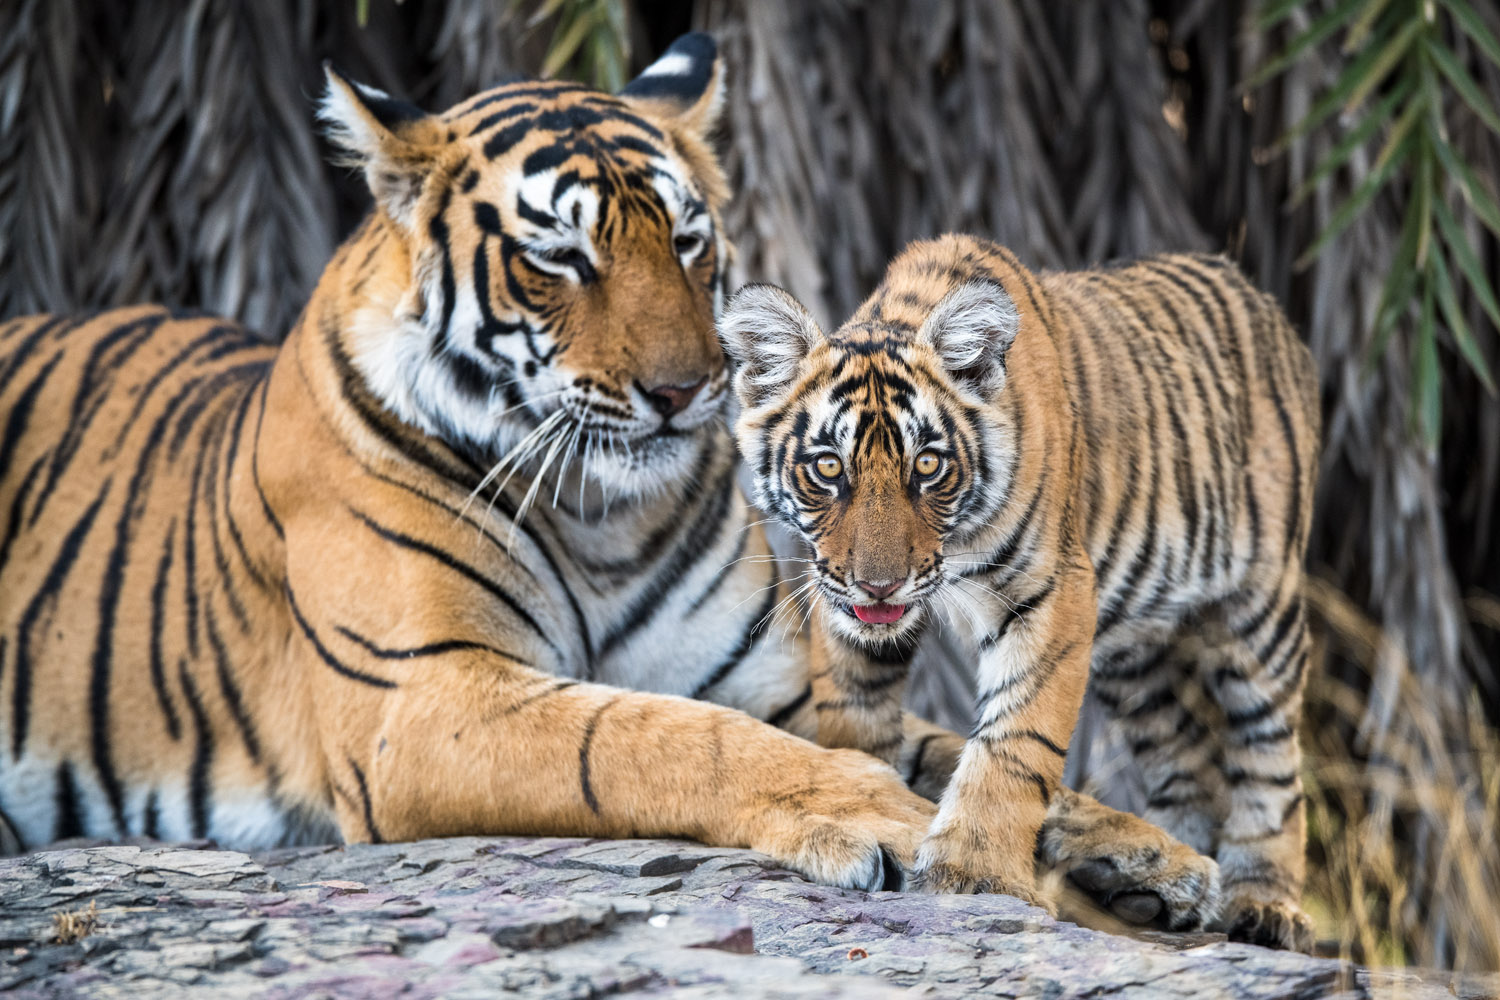 Bengal tiger mother with cub, Ranthambhore National Park, Rajasthan, India